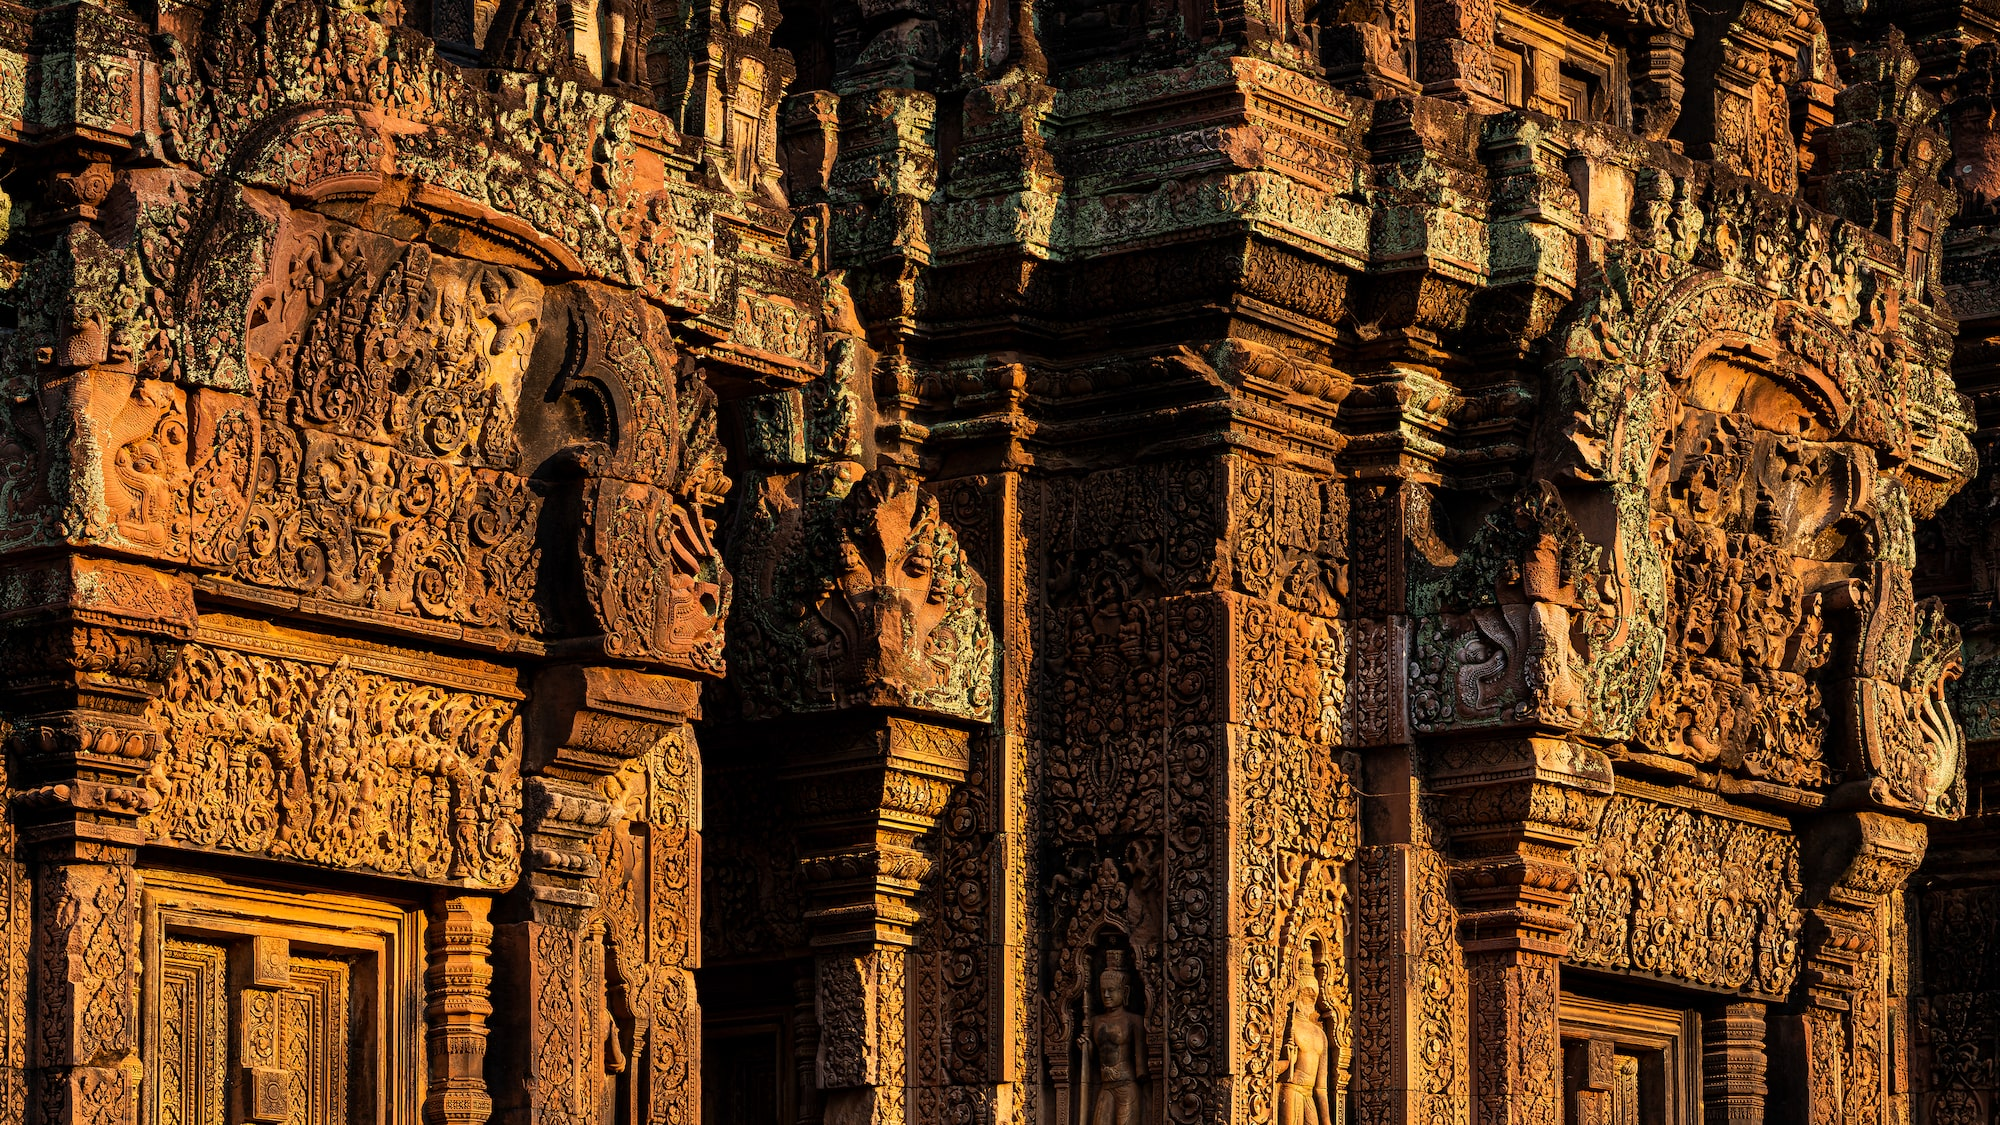 Carvings on door and wall in Banteay Srei